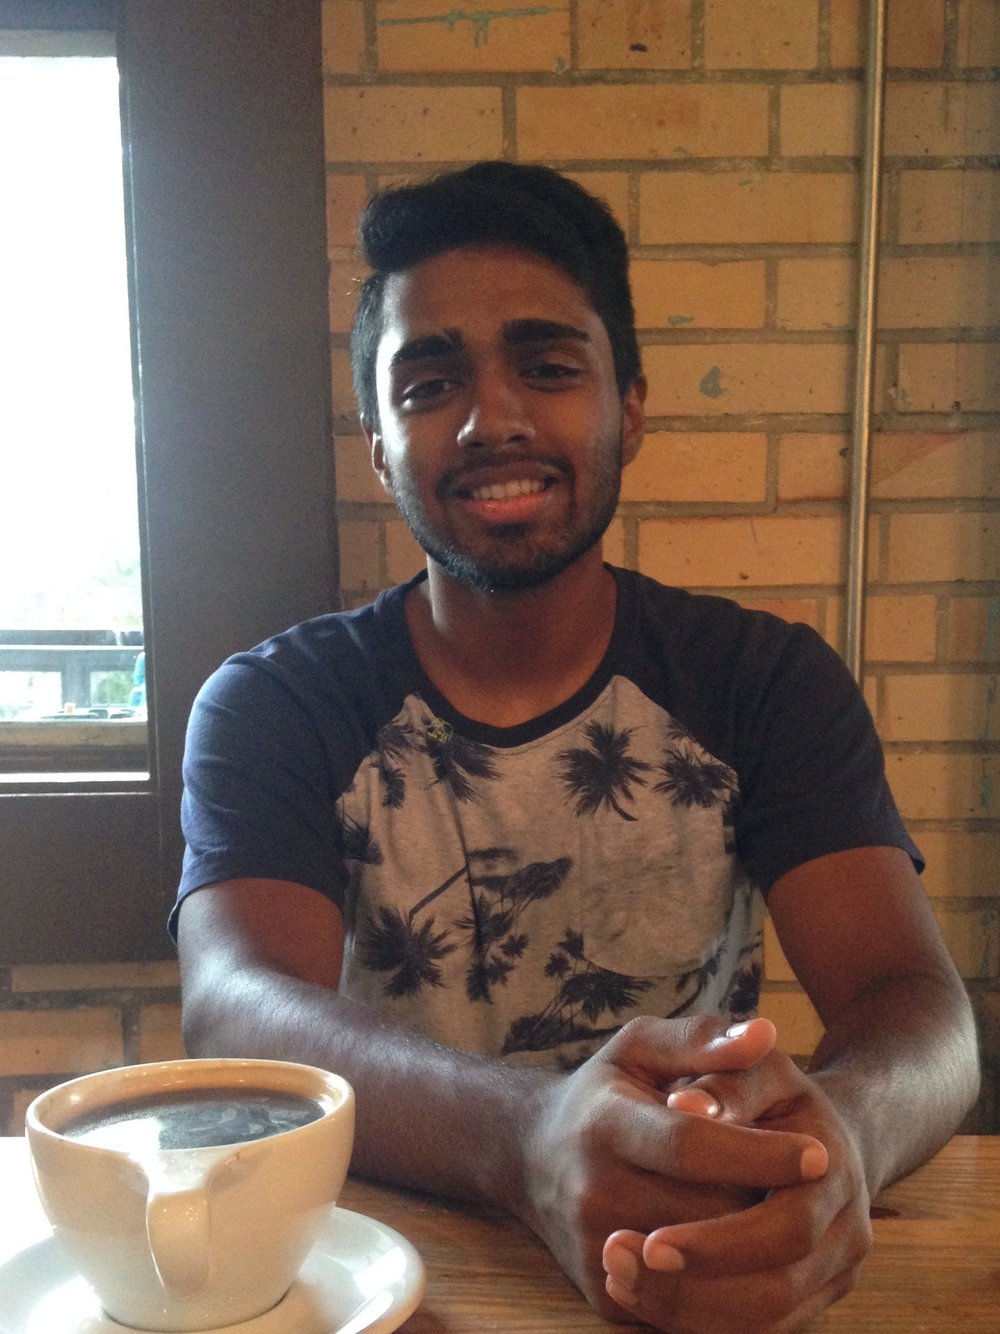 """Claremont - Vin Srikanth - Hey y'all, I'm Vin! I'm from San Antonio, Texas (hence the """"y'all""""), and in stereotypical CMC fashion I'm an Economics and Government major. When I'm not busy pretending to be studying so I can feel less bad about my grades, you can catch me trying to get swole in Roberts (emphasis on """"trying"""") or watching whatever NBA or NFL game or tennis match is on. I'm also super passionate about politics and world affairs, so if you want to waste far too much of your time listening to me talk then just ask me about those. Good coffee, good tea, and good food are the ways to my heart, so if that's your thing then hit me up and we'll grab some. I'm hyped to be the RA of Chall! Feel free to swing by any time; I'm super excited to meet more people!"""